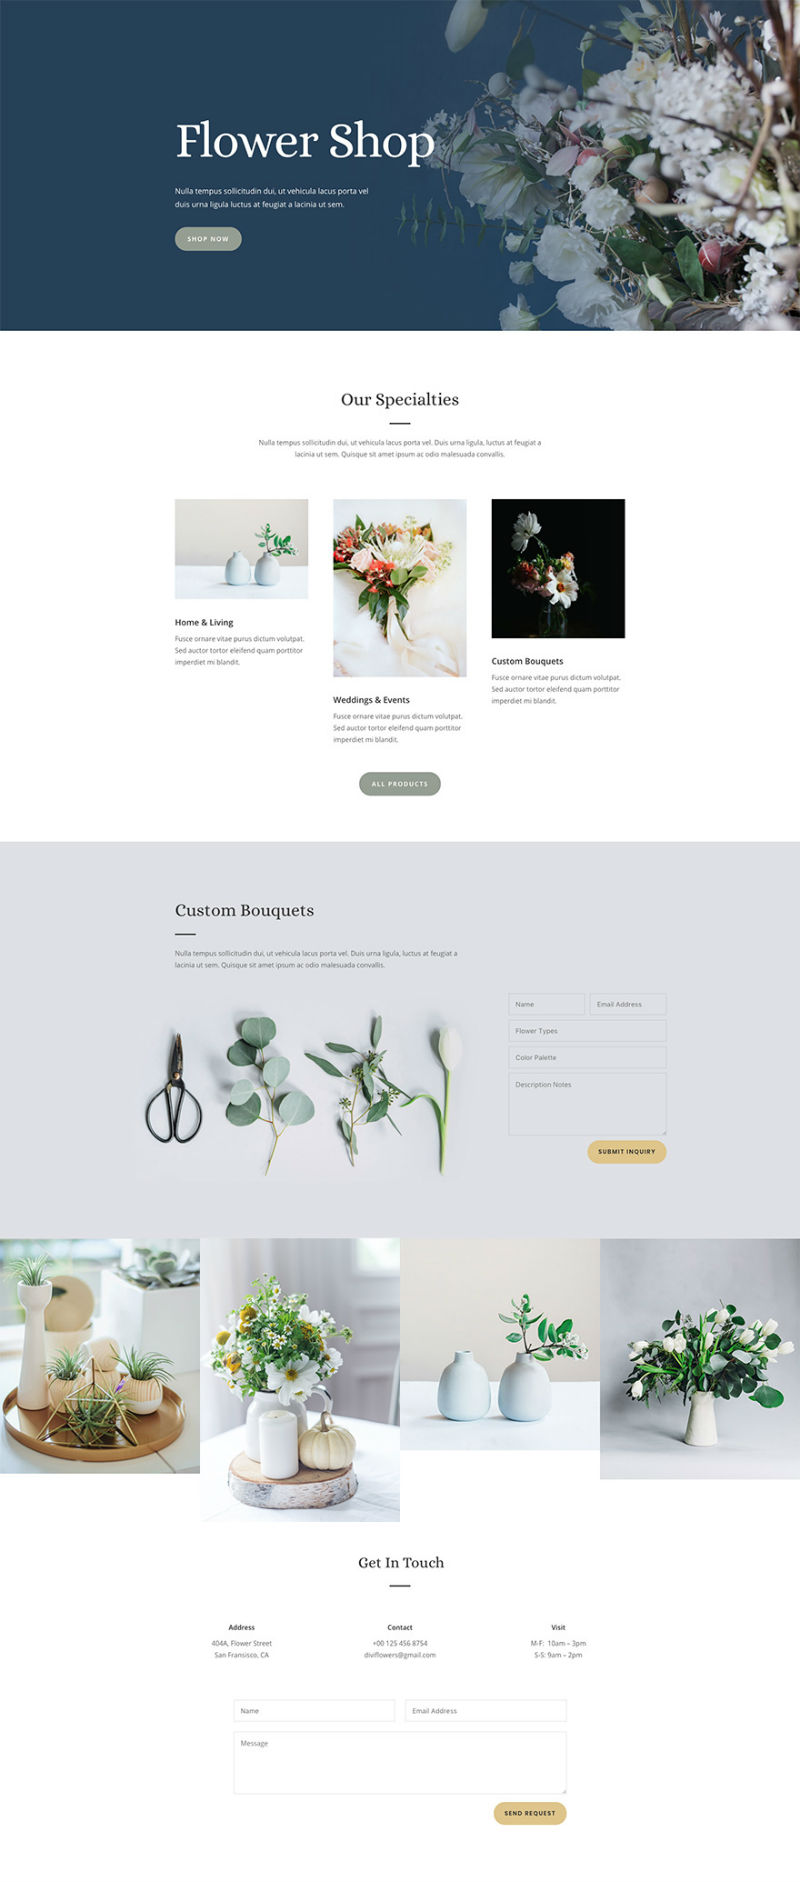 Flower Shop Pre-made WordPress Website Design